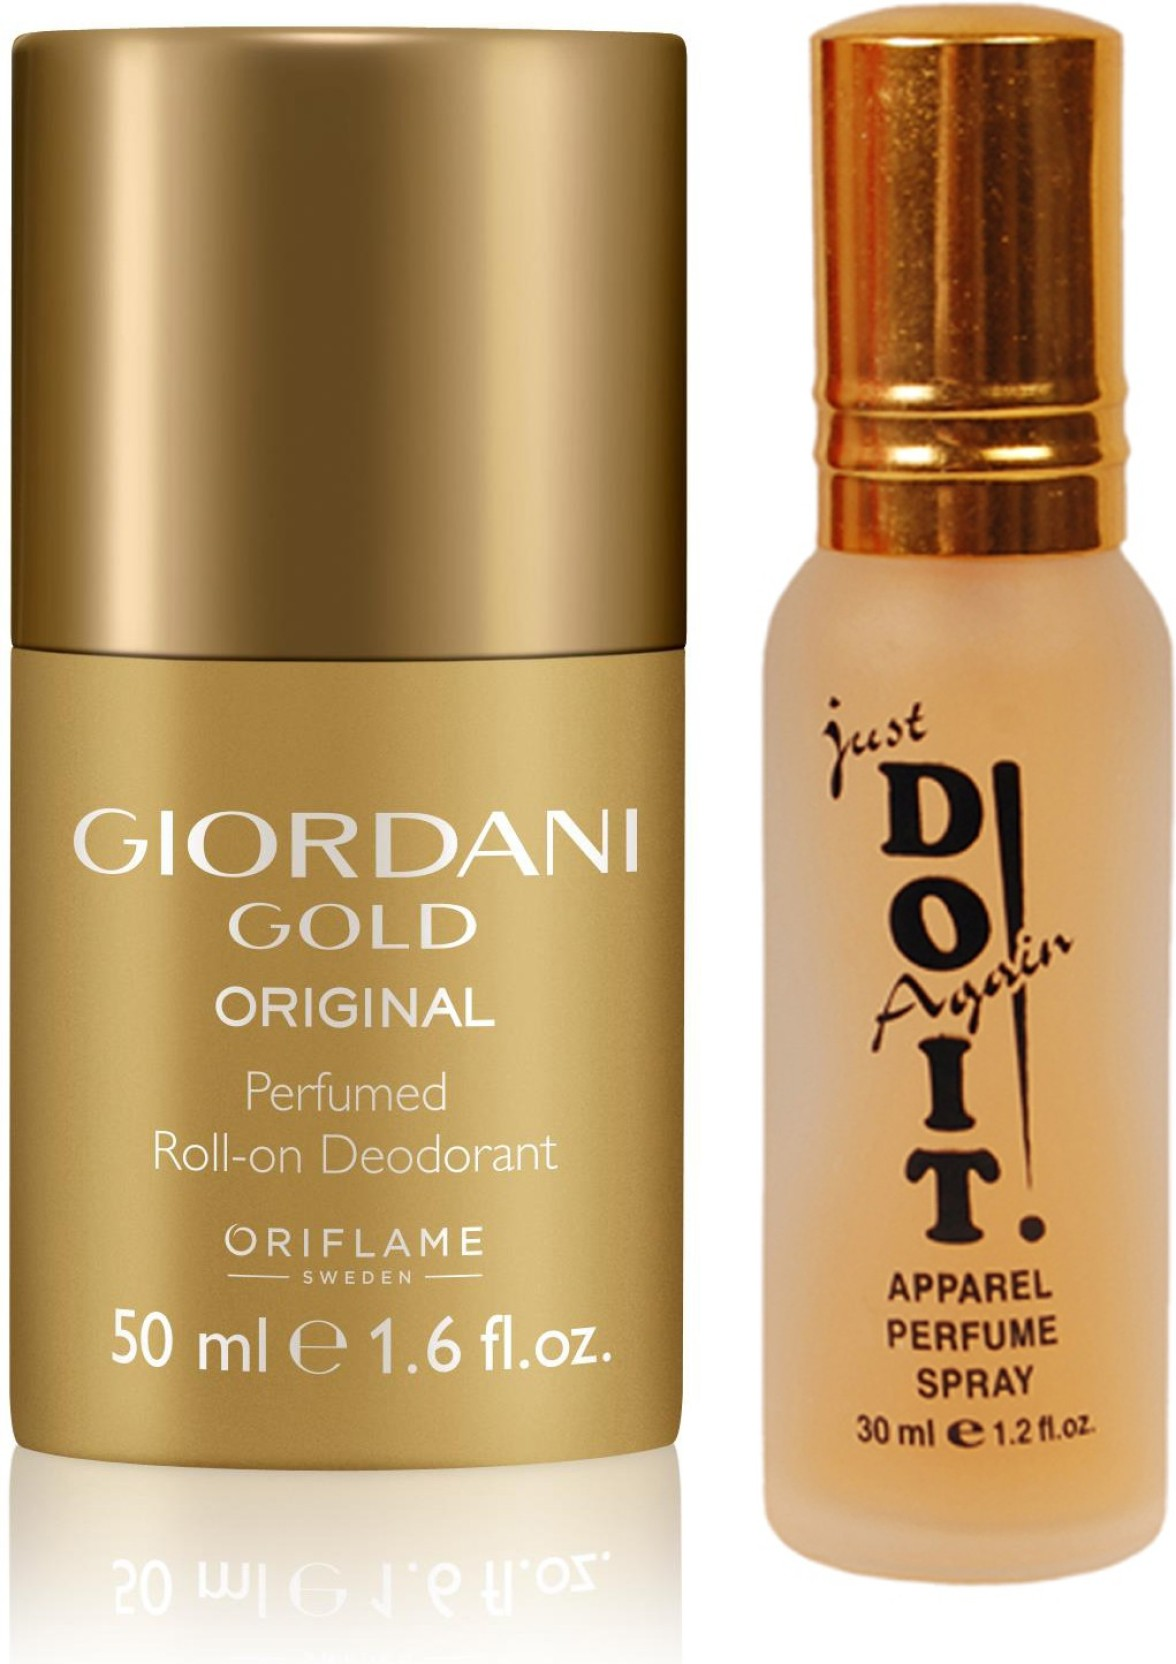 Oriflame Sweden Giordani Gold Original Perfumed Roll On Deodorant Miss Body Lotion Add To Cart